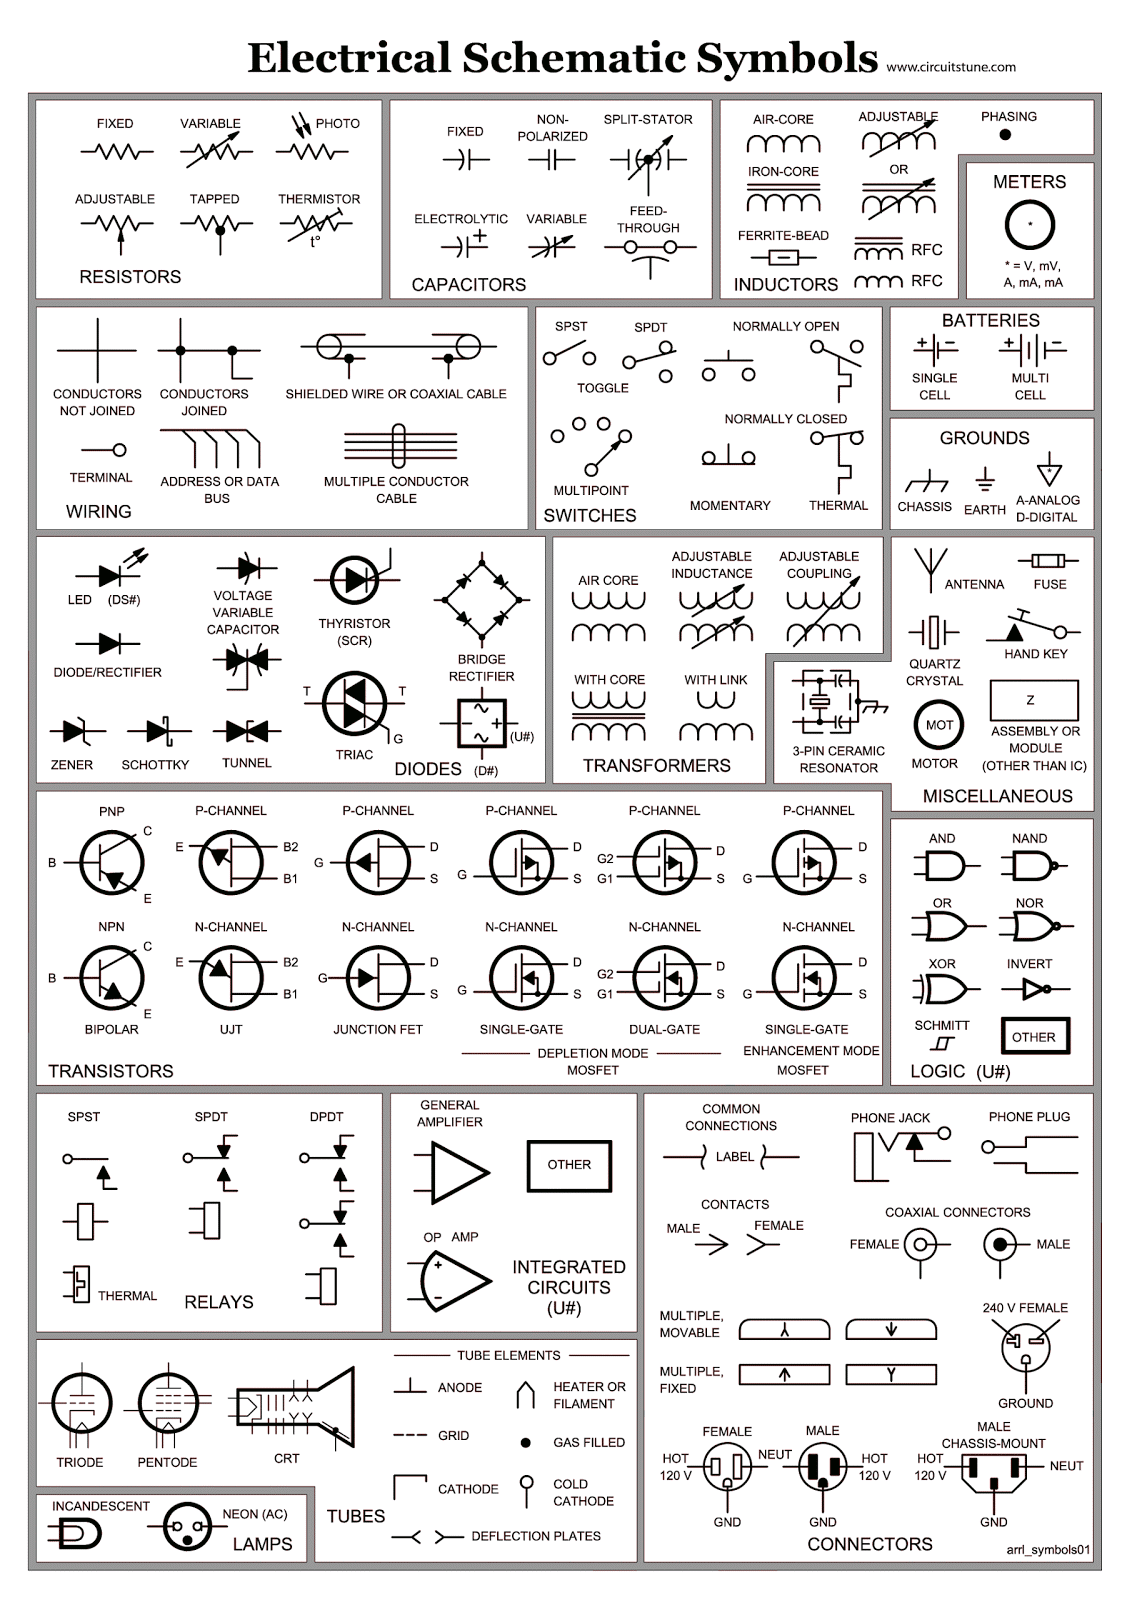 Electrical Diagrams Symbols Free Wiring Diagram For You Visio Circuit Schematic From The 2008 Arrl Handbook Rf Cafe Circuitstune And Meaning Chart